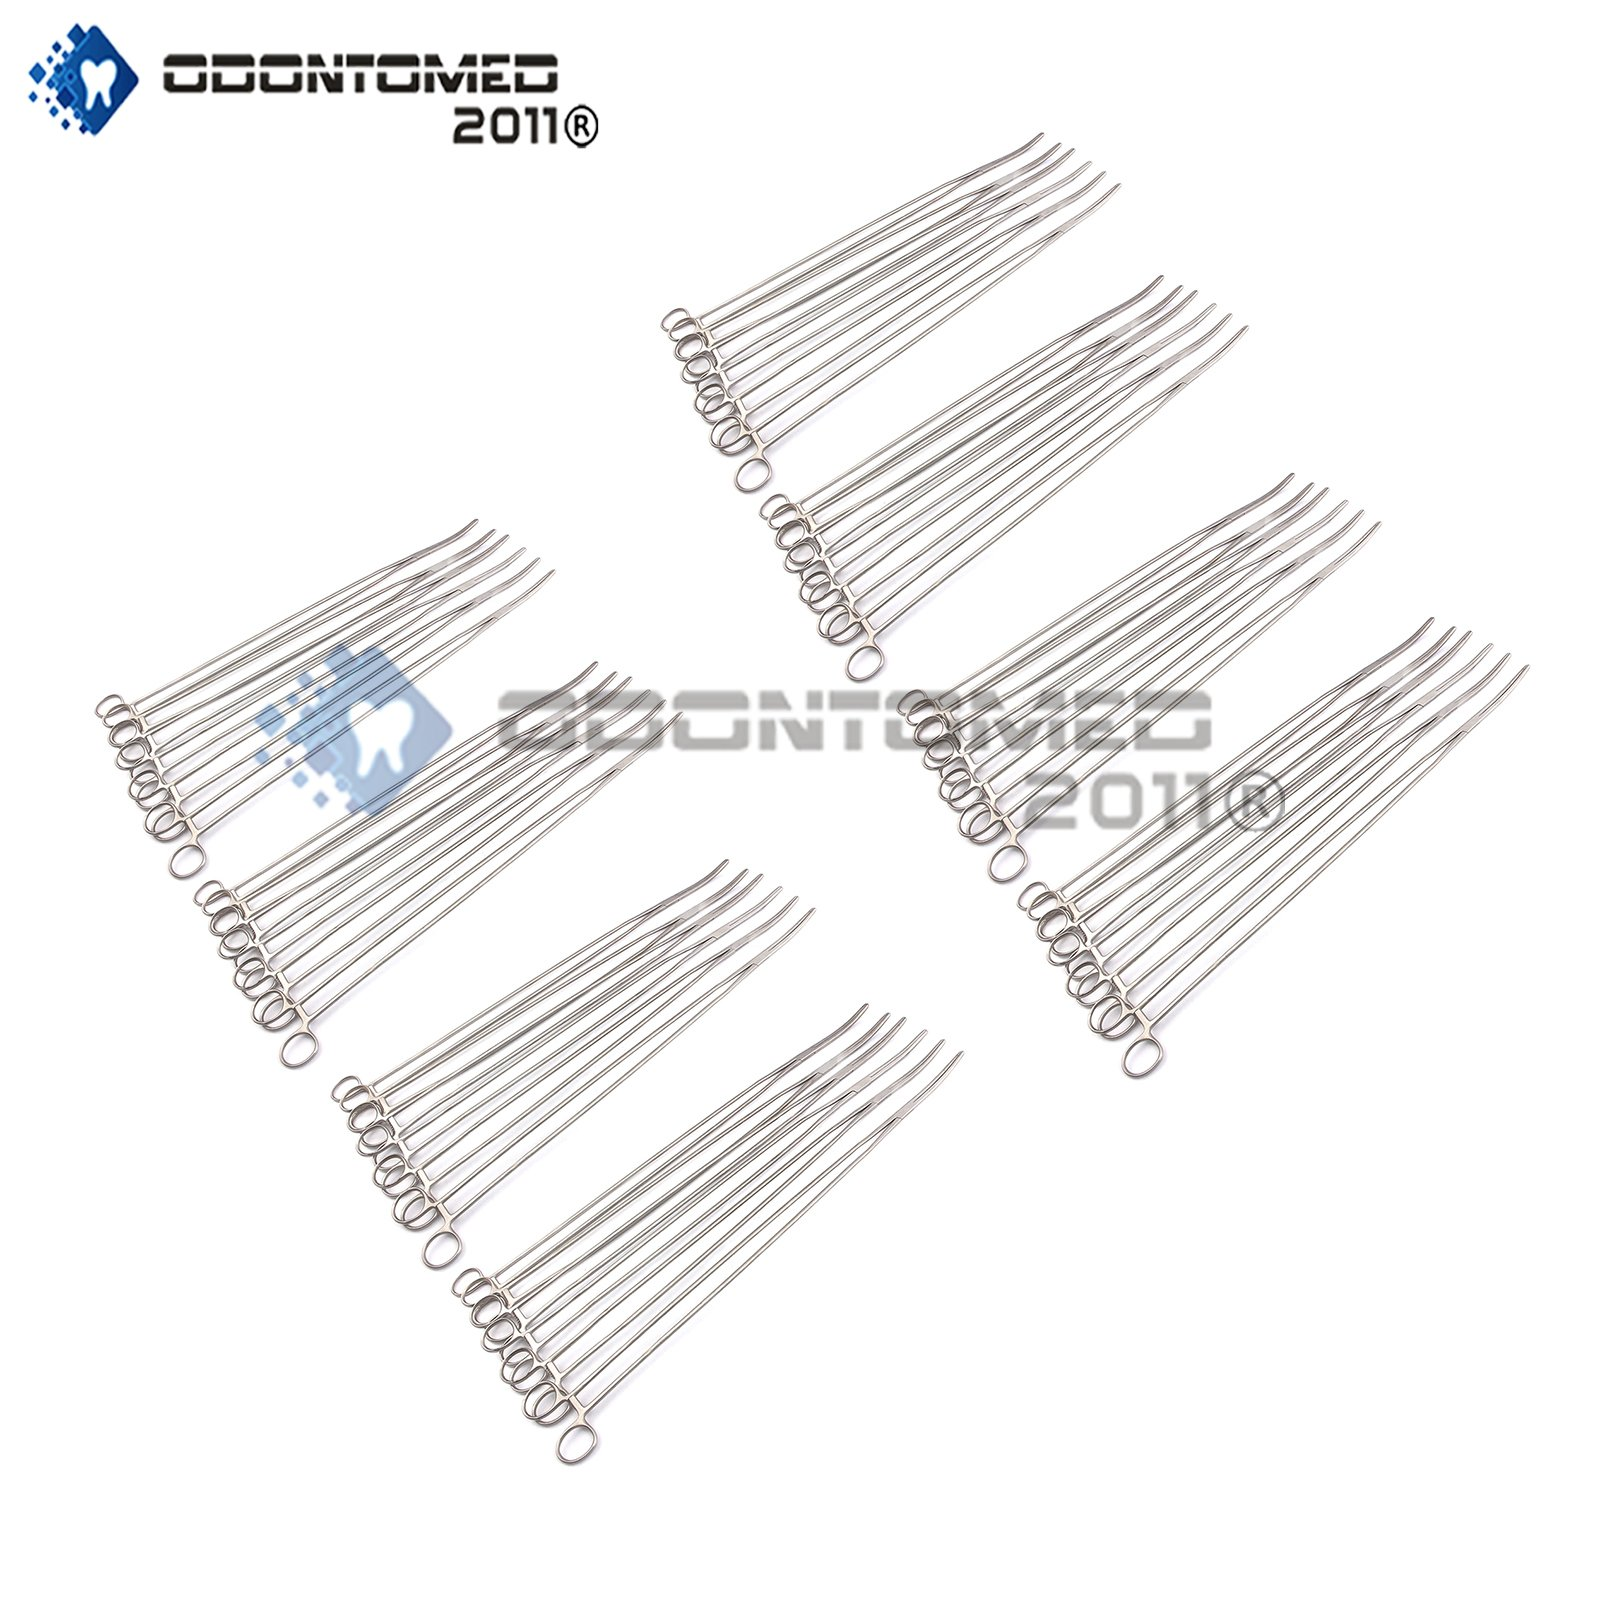 OdontoMed2011 Lot Of 50 Pieces Pean Hemostat Locking Curved 24'' Forceps Full Serrated Stainless Steel